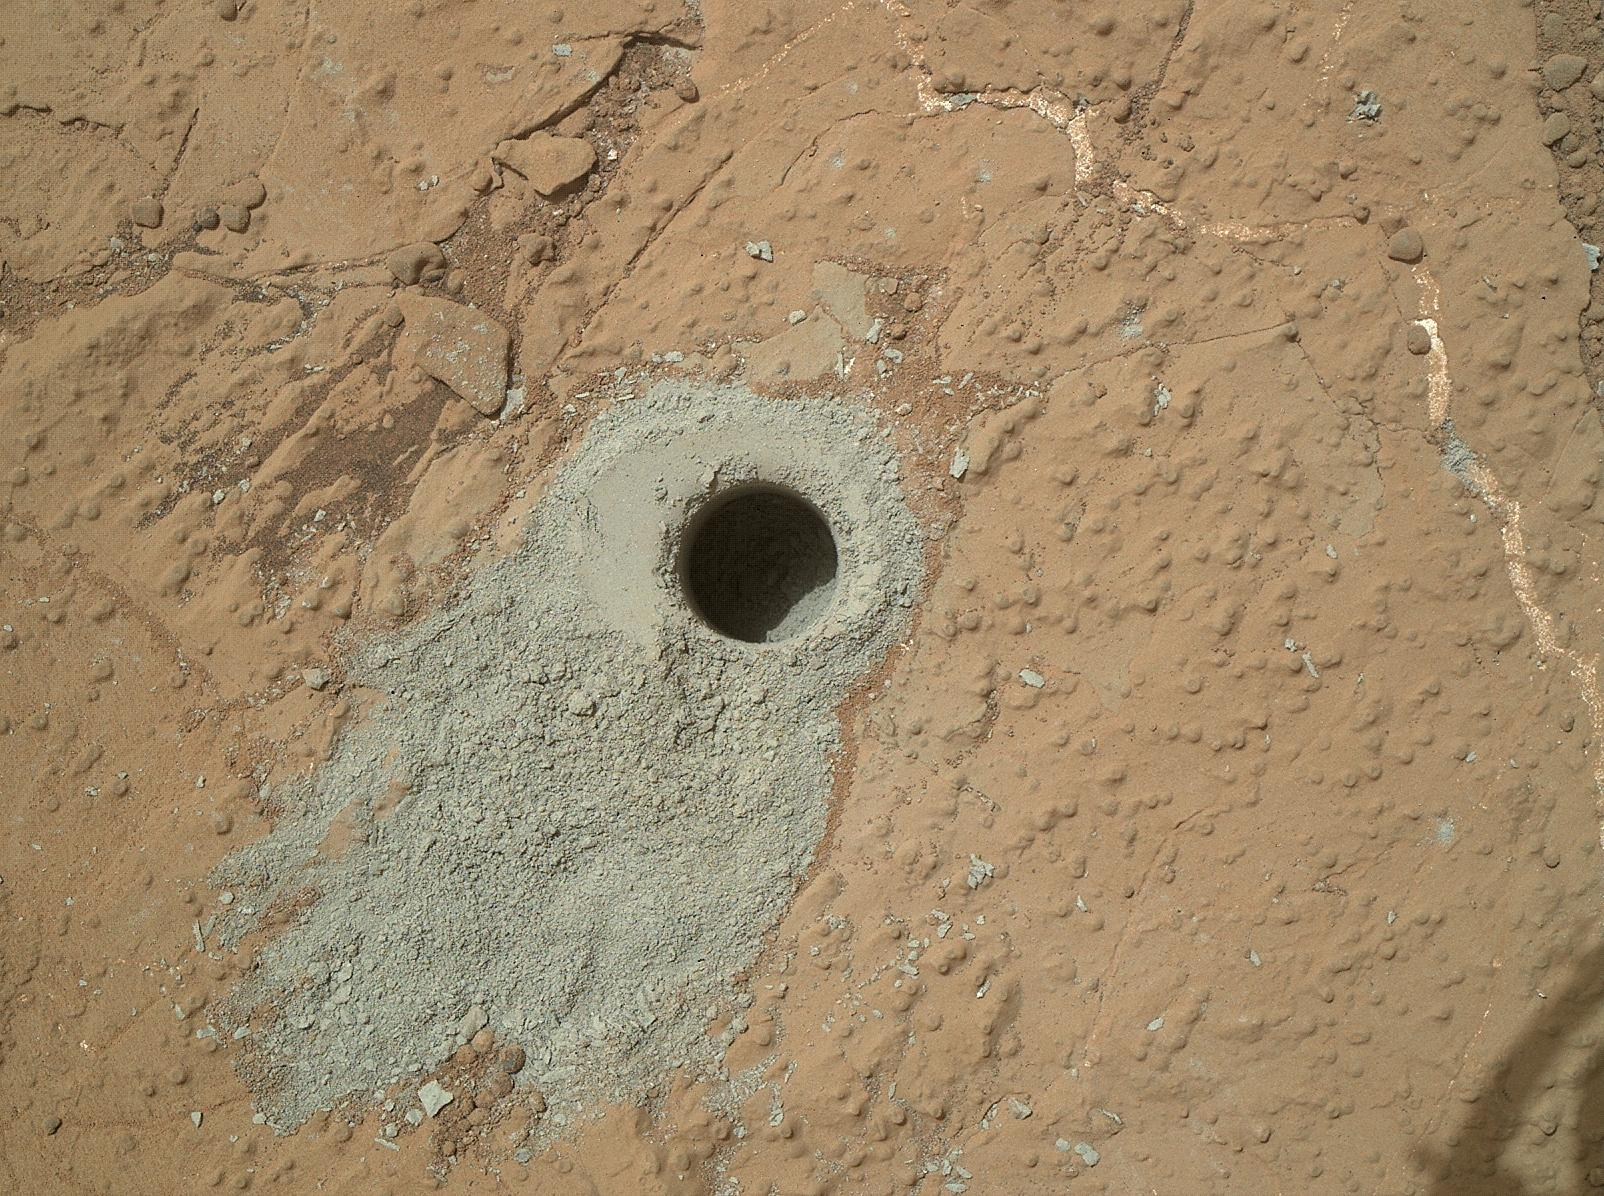 NASA's Curiosity Rover Drills Into 2nd Mars Rock